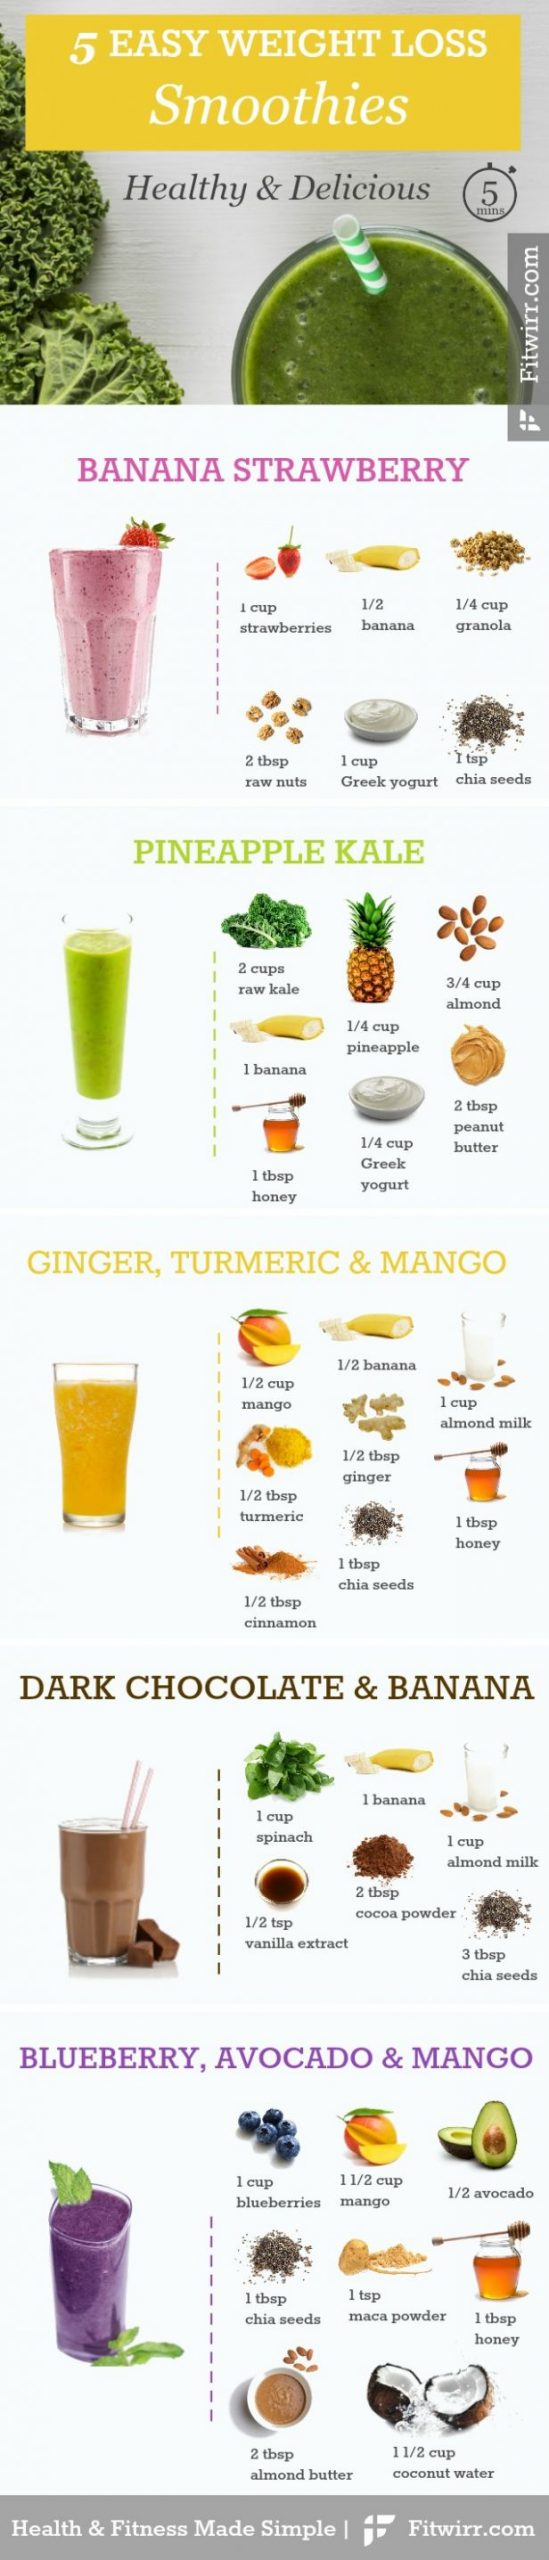 Healthy Smoothie Recipes - 9 Best Smoothies for Weight Loss - Fitwirr